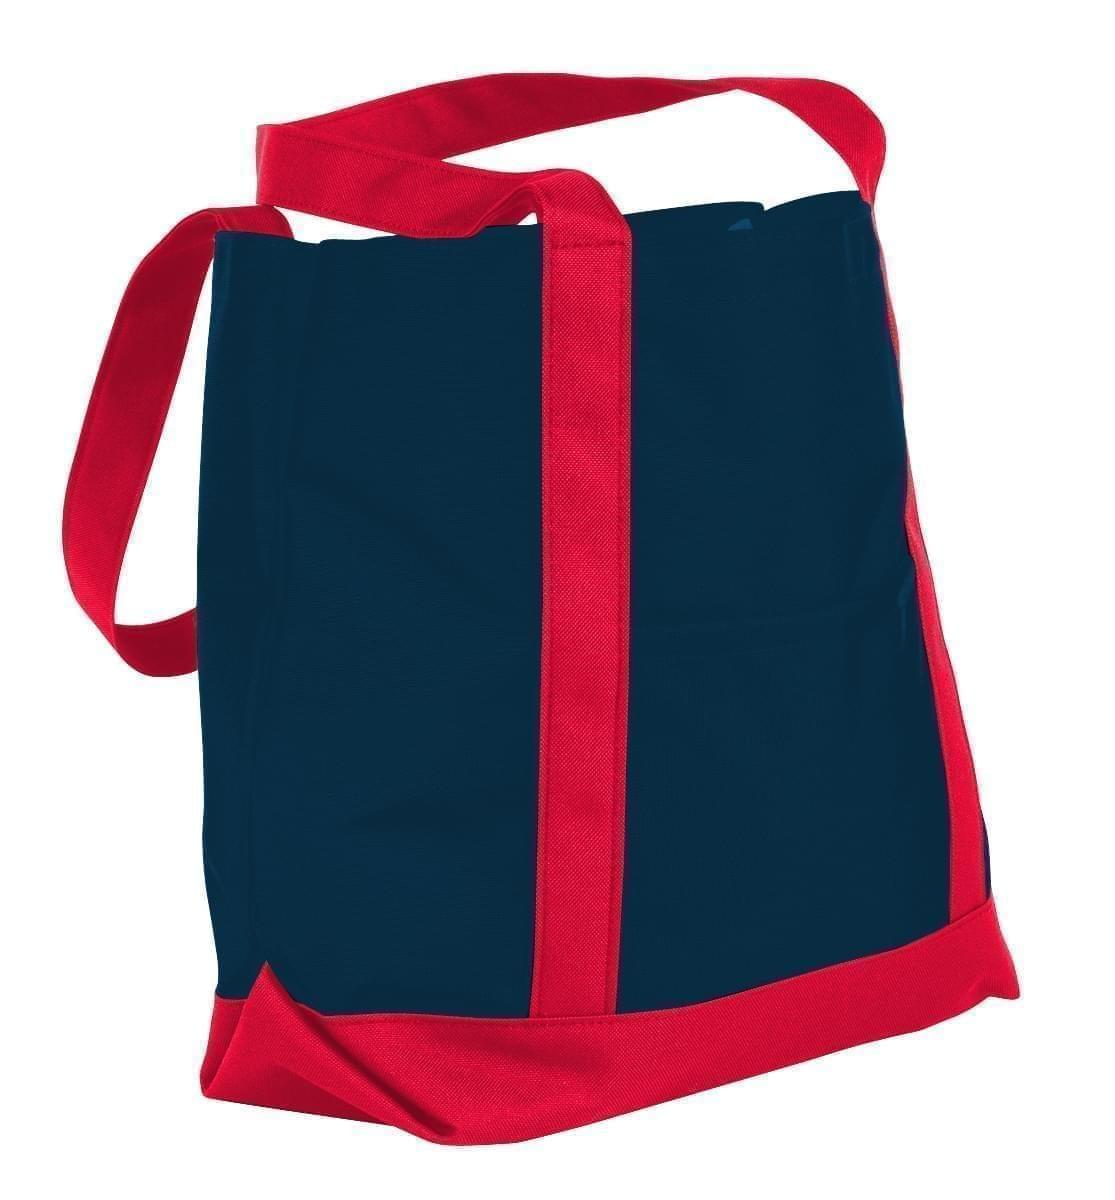 USA Made Canvas Fashion Tote Bags, Navy-Red, XAACL1UACL